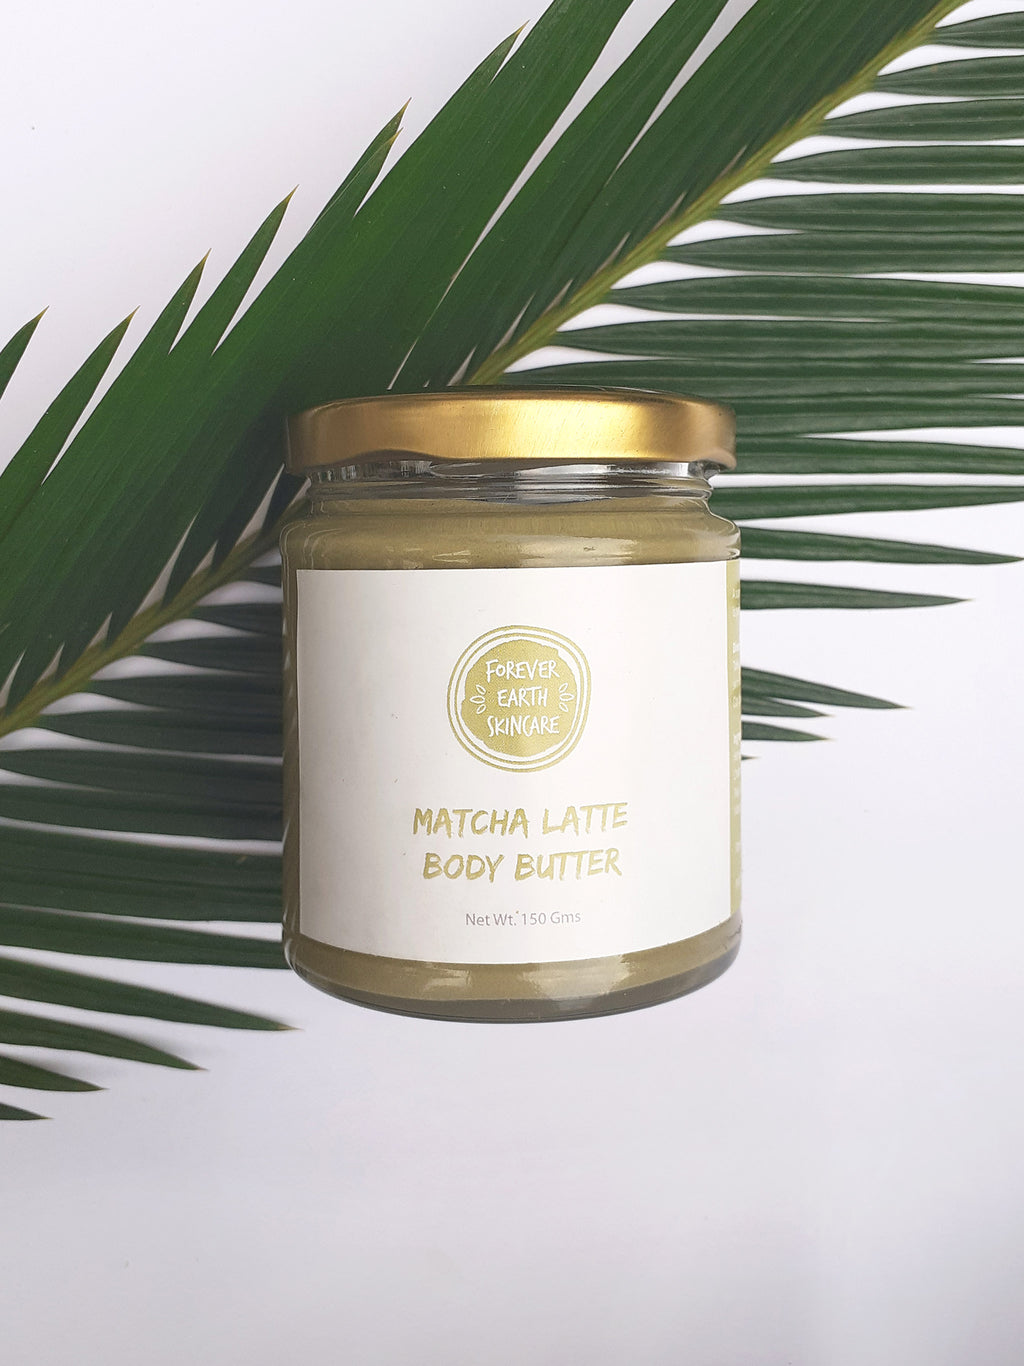 Matcha Latte Body Butter